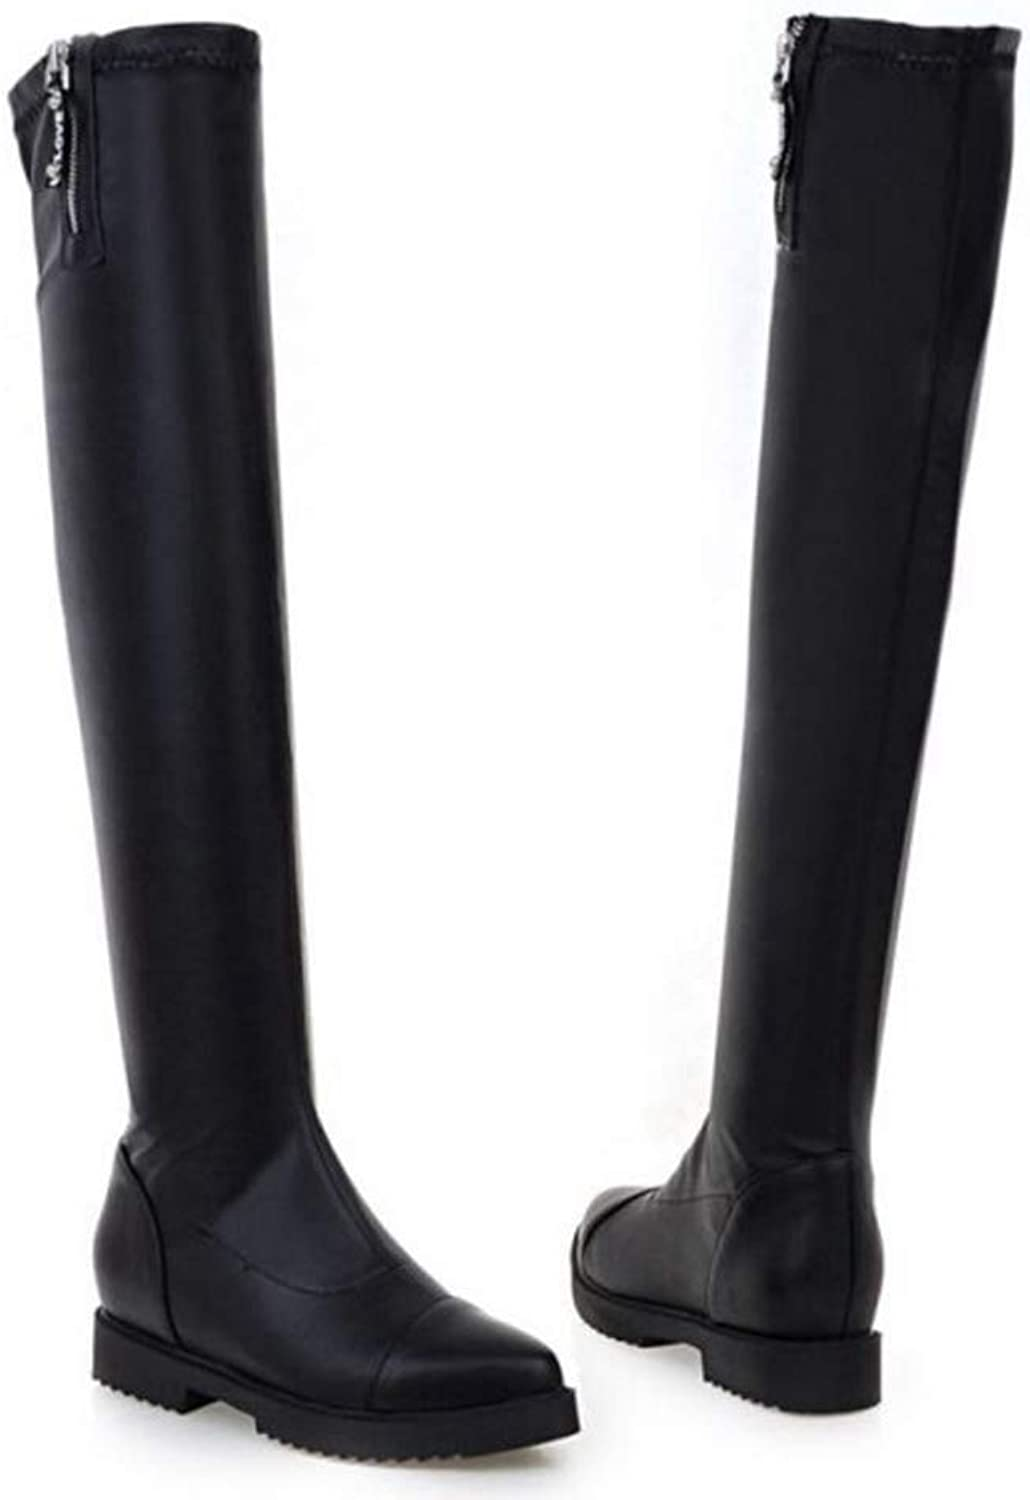 Women Over The Knee Boots Ladies Driving Fashion Long Snow Boot Warm Winter High Heel Cool Footwear shoes